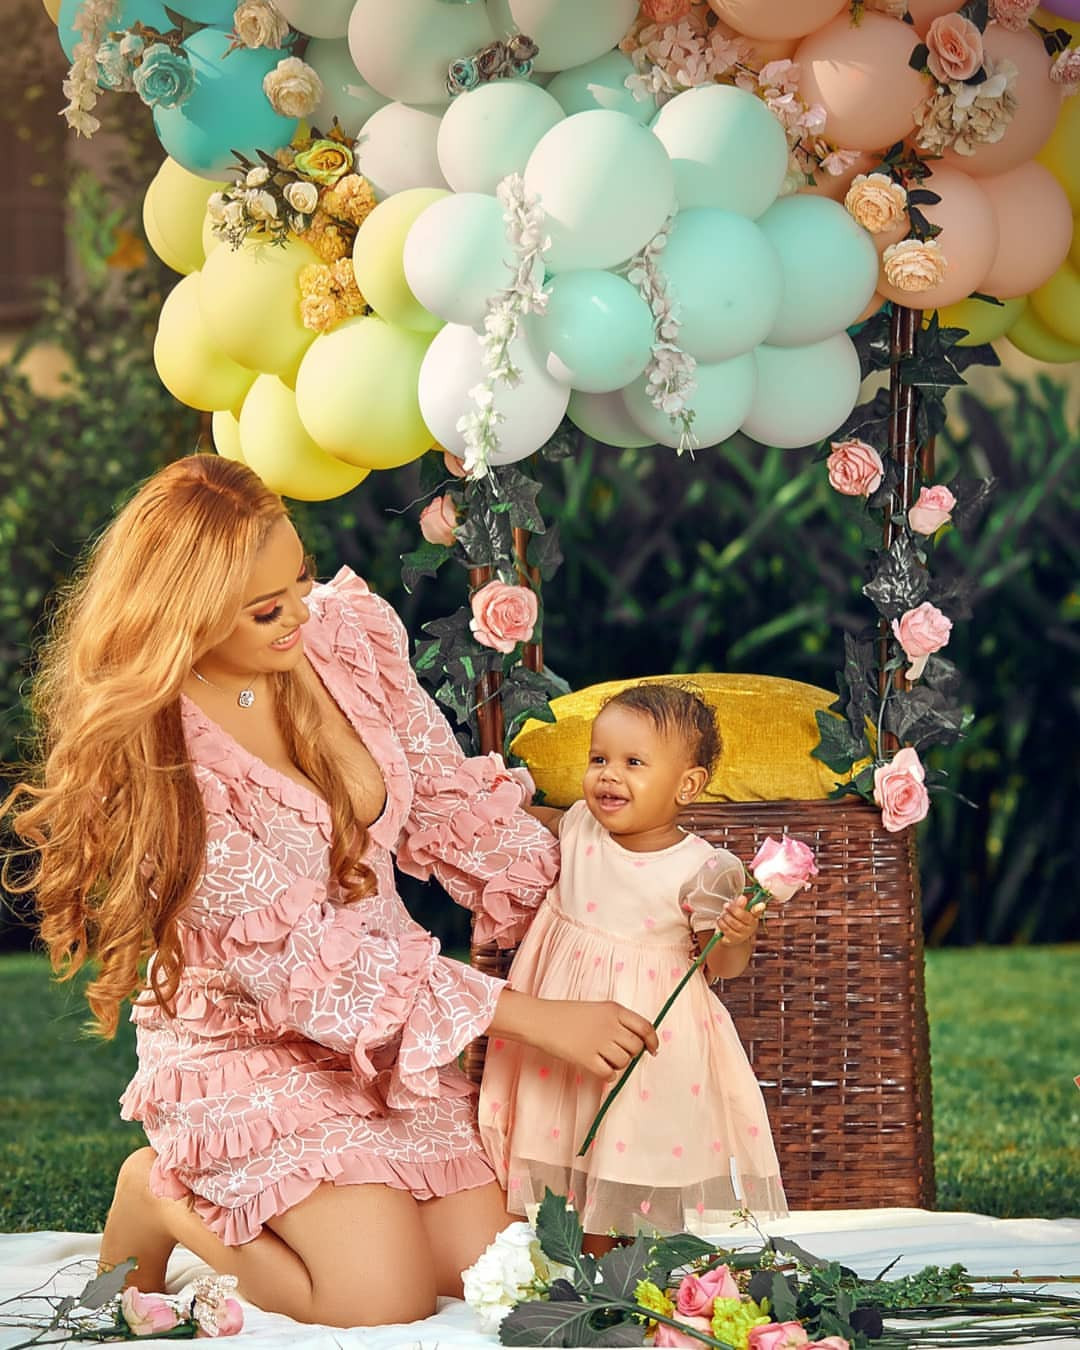 Ex-model and designer, Sarah Ofili and hubby celebrate their daughter on her 1st birthday (photos)